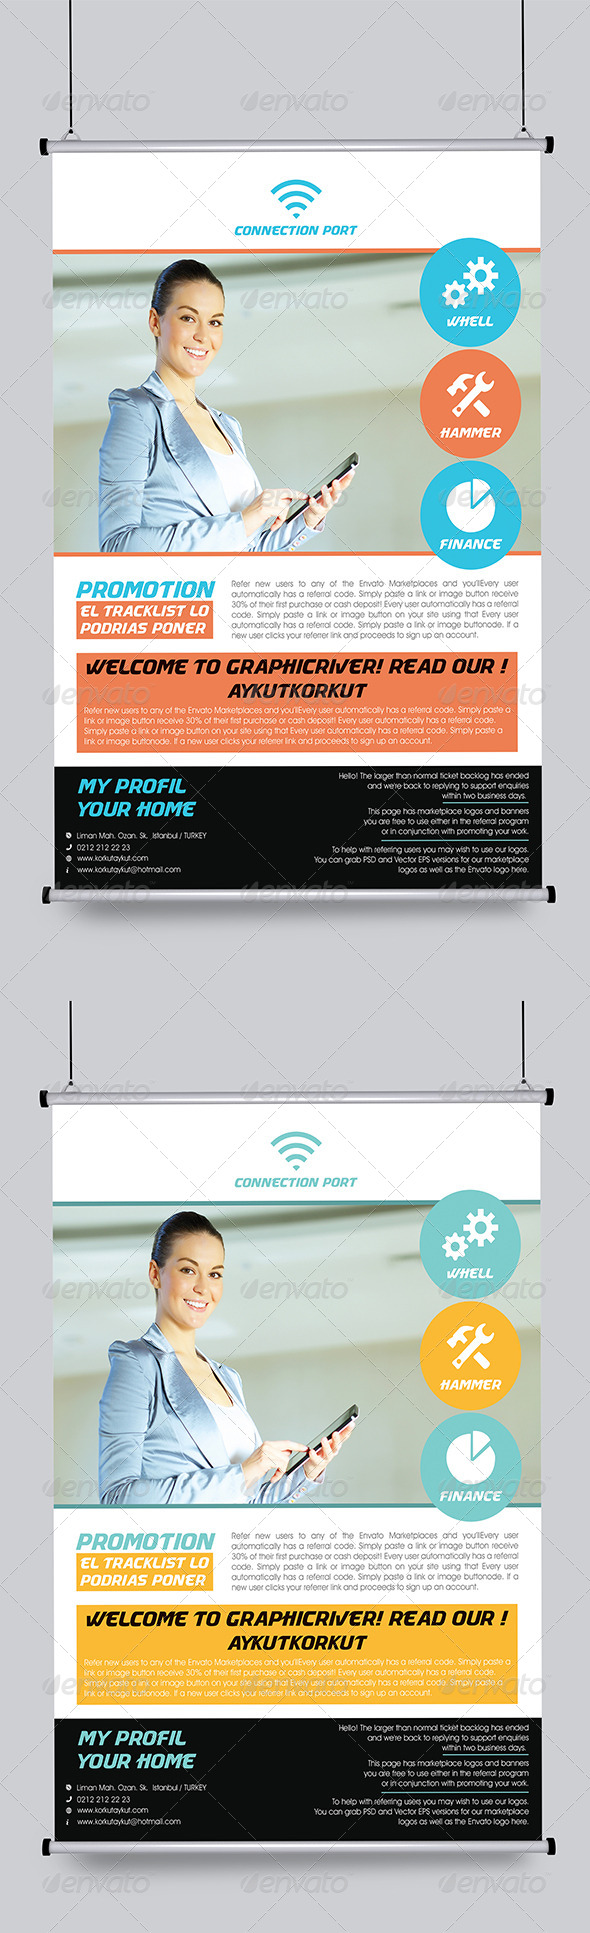 GraphicRiver Connection Port Flyer Template 5966598